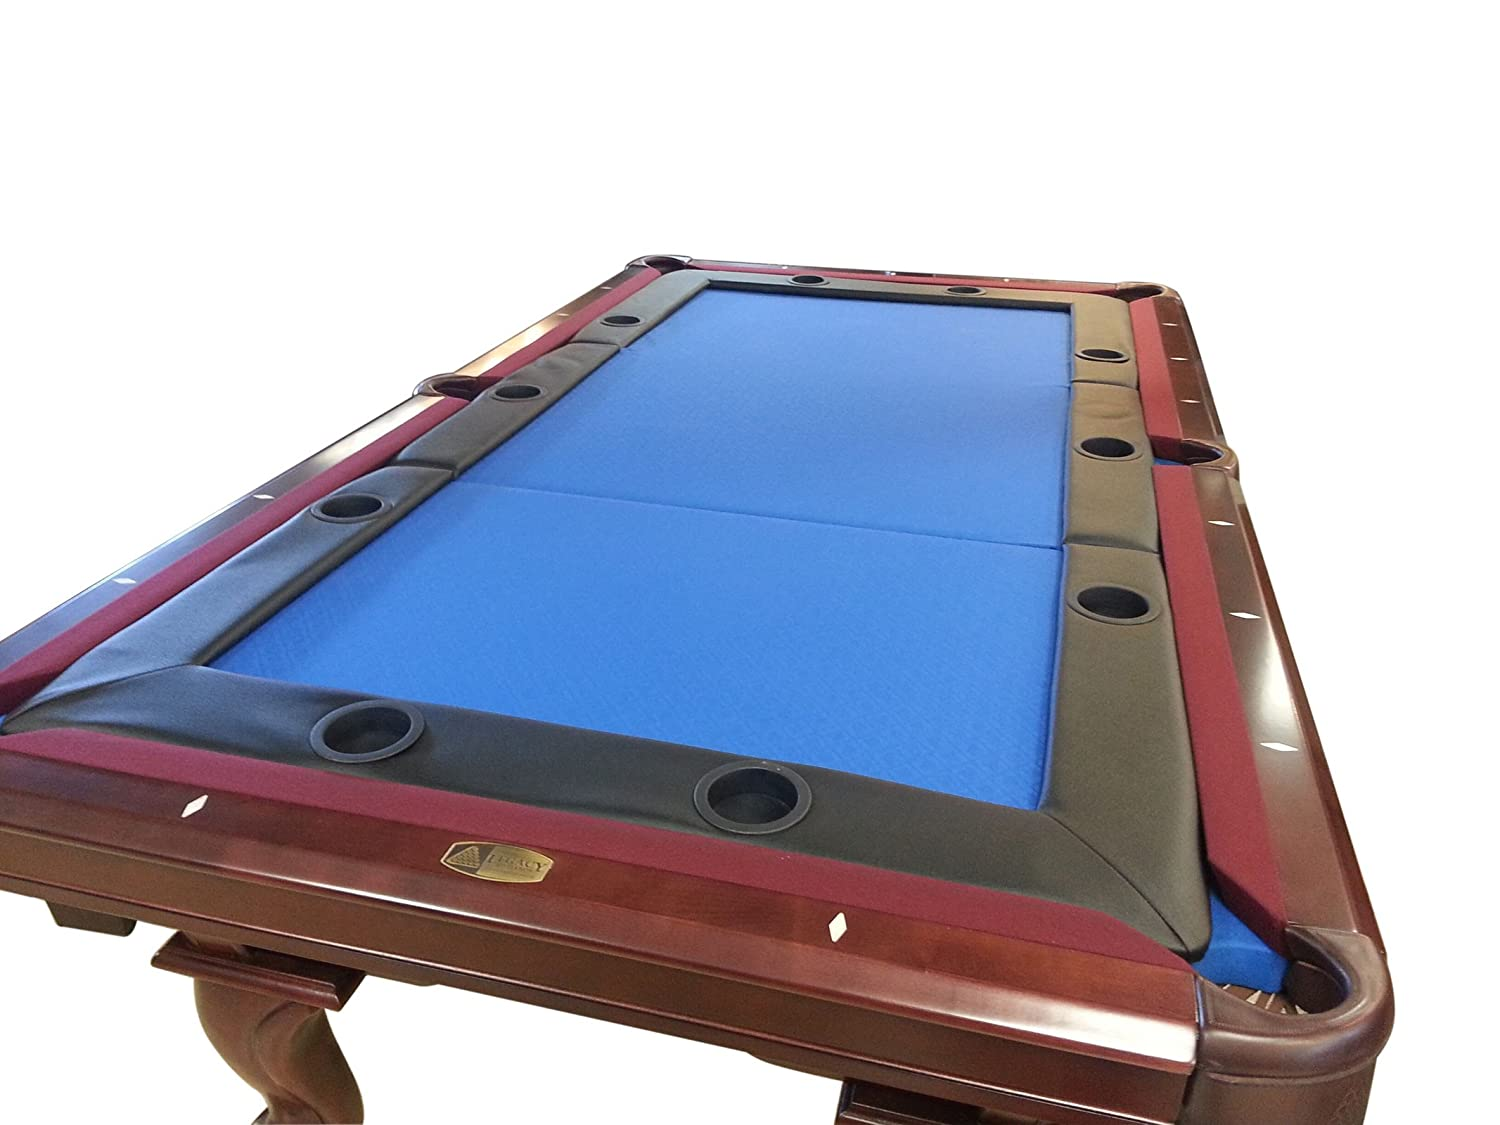 Amazon.com : Poker Table Tops For Pool Table By MRC Poker Fit Standard 8  Feet Pool Tables : Sports U0026 Outdoors